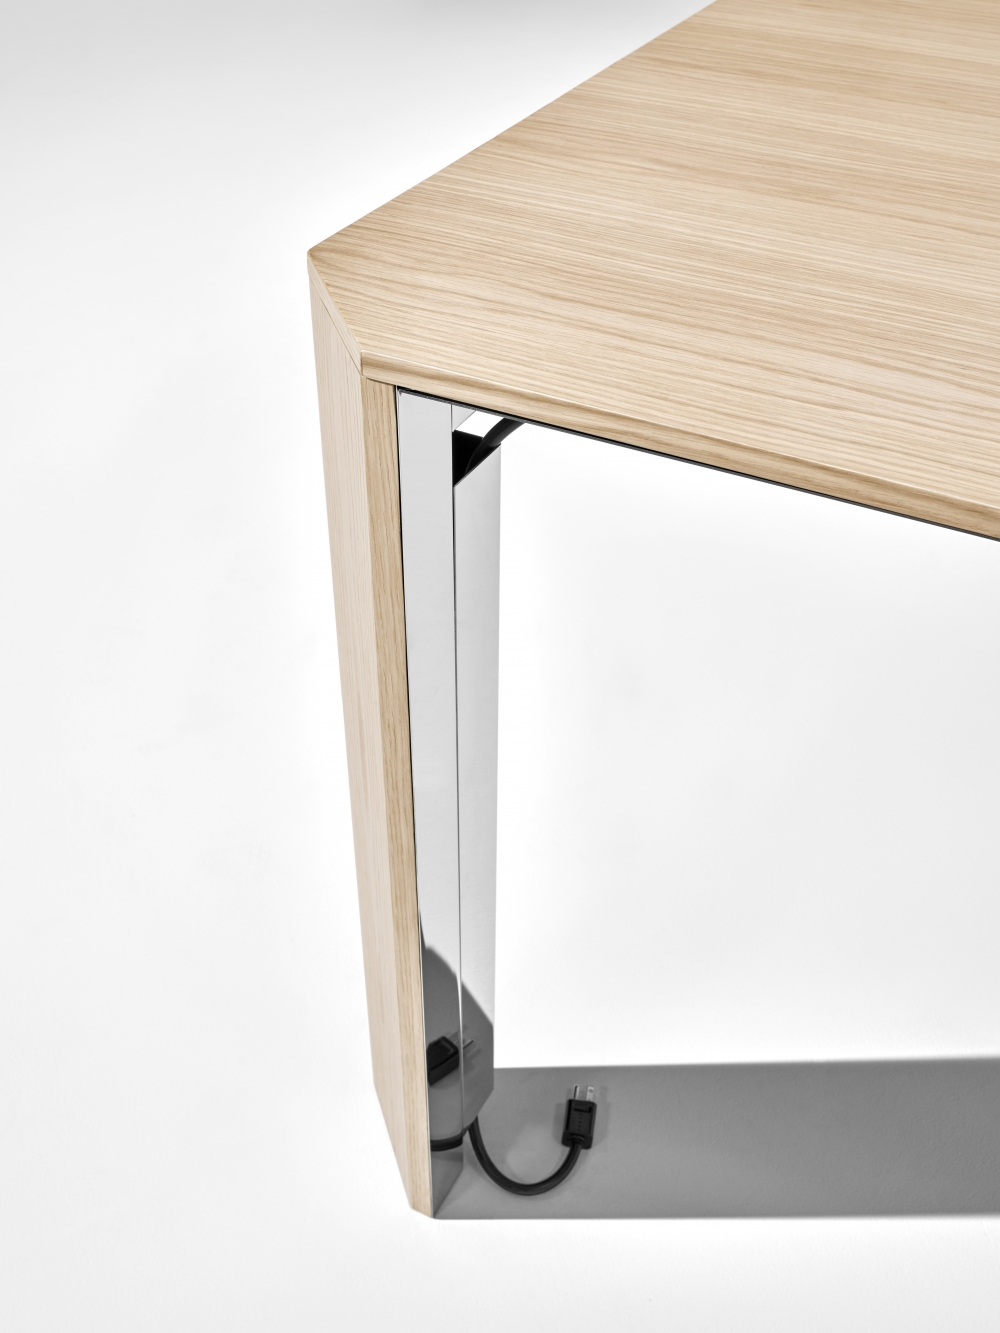 Preview of Tova | Conference Table | Development Finish on Oak | Polished Chrome Underside | Leg Detail